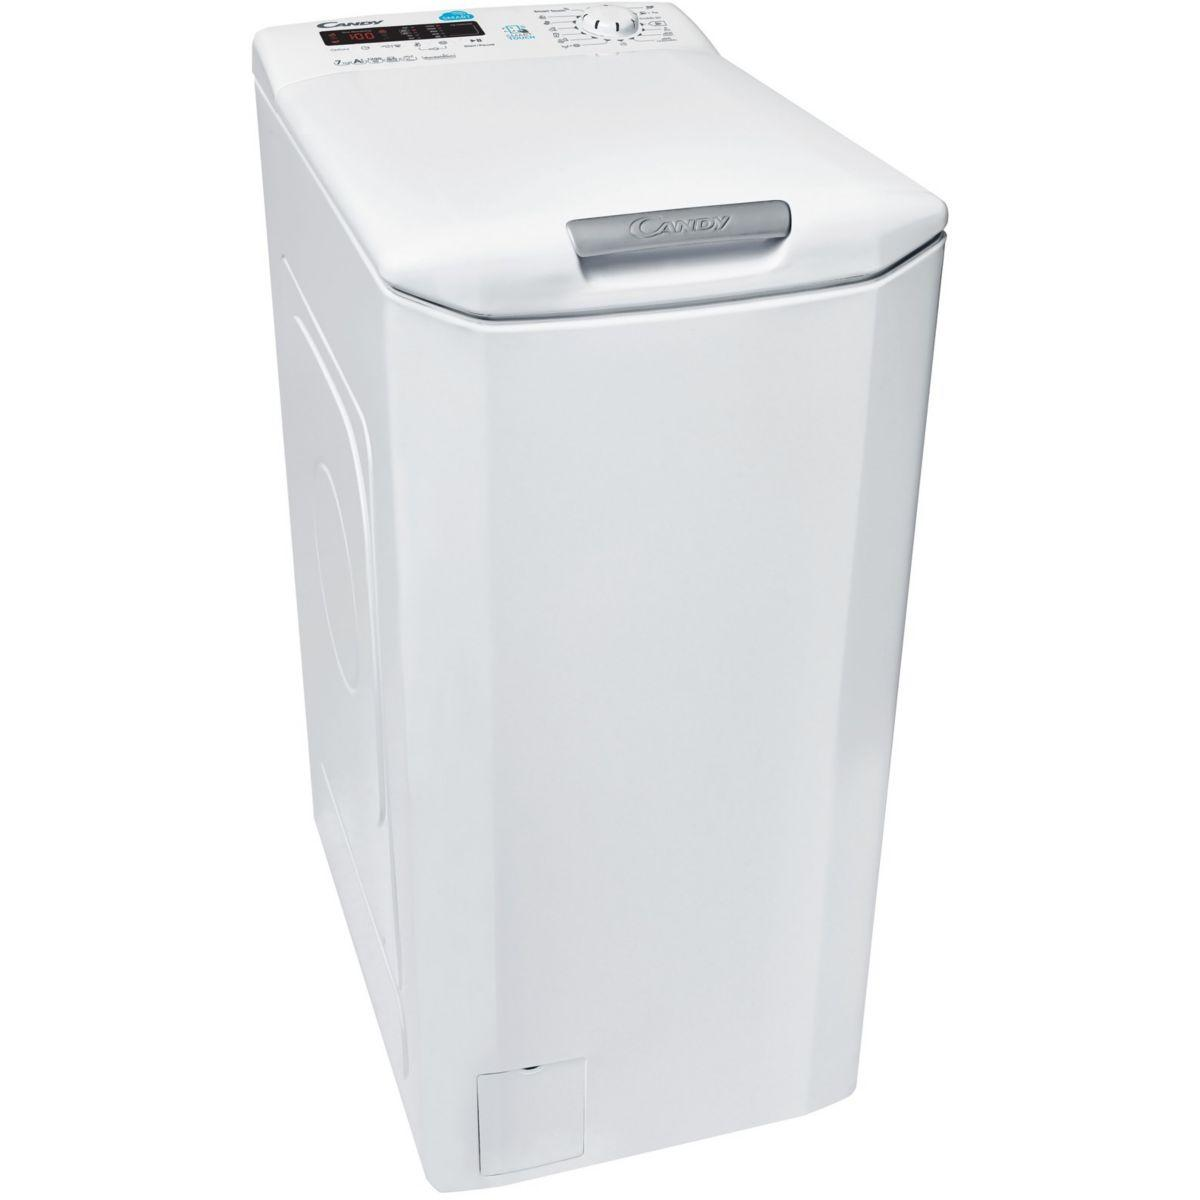 Lave linge top candy cst g372d-s (photo)